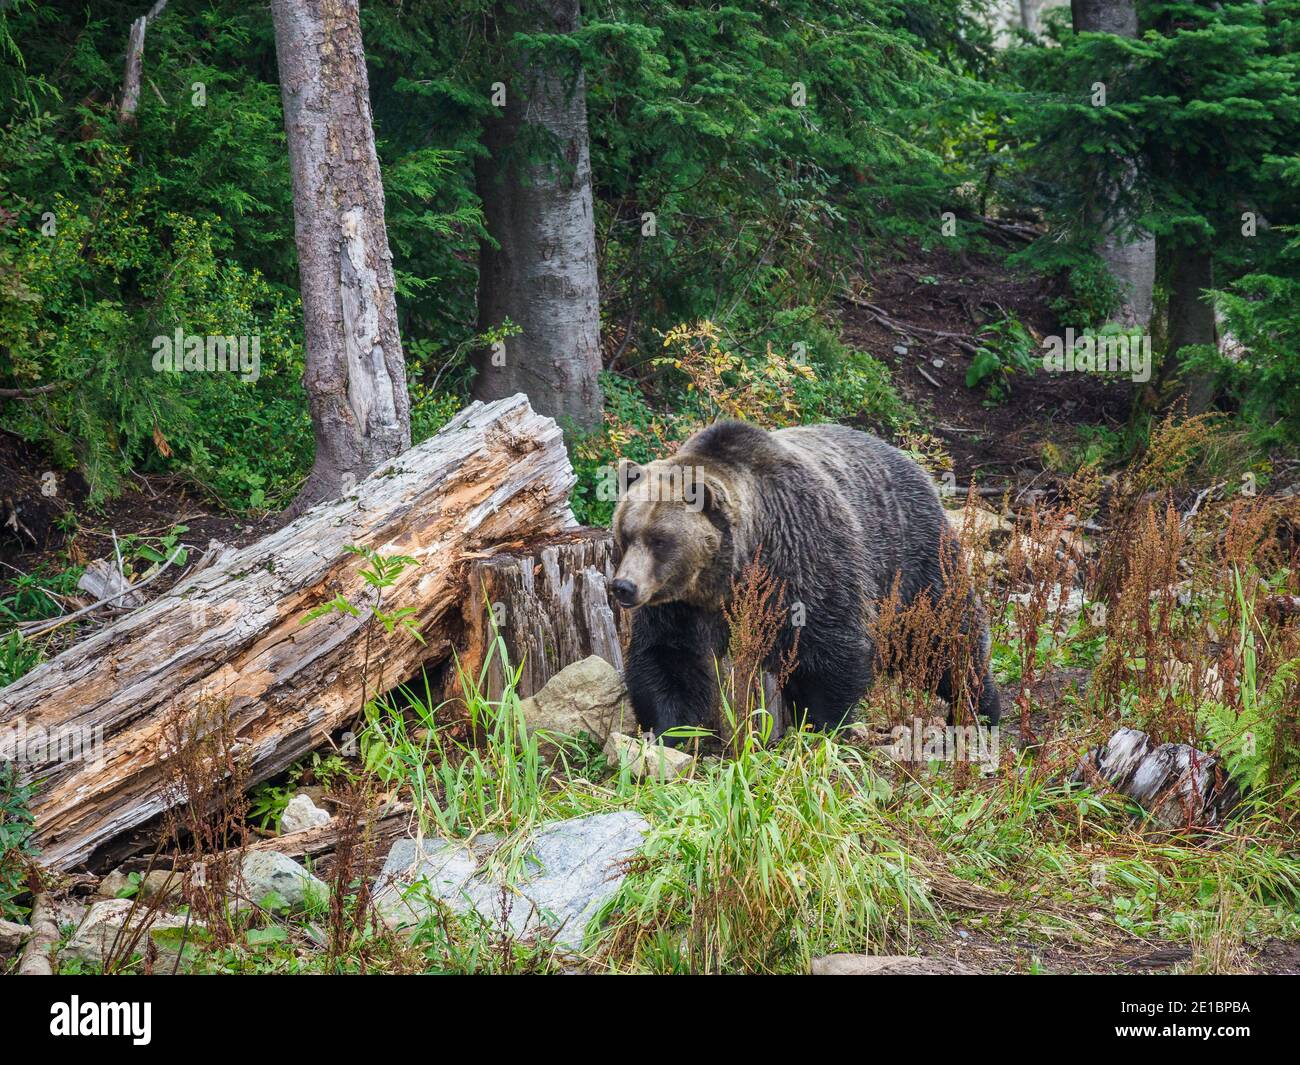 Grinder & Coola Grizzly Bears, Grouse Mountain, Vancouver, British Columbia, Canada Stock Photo